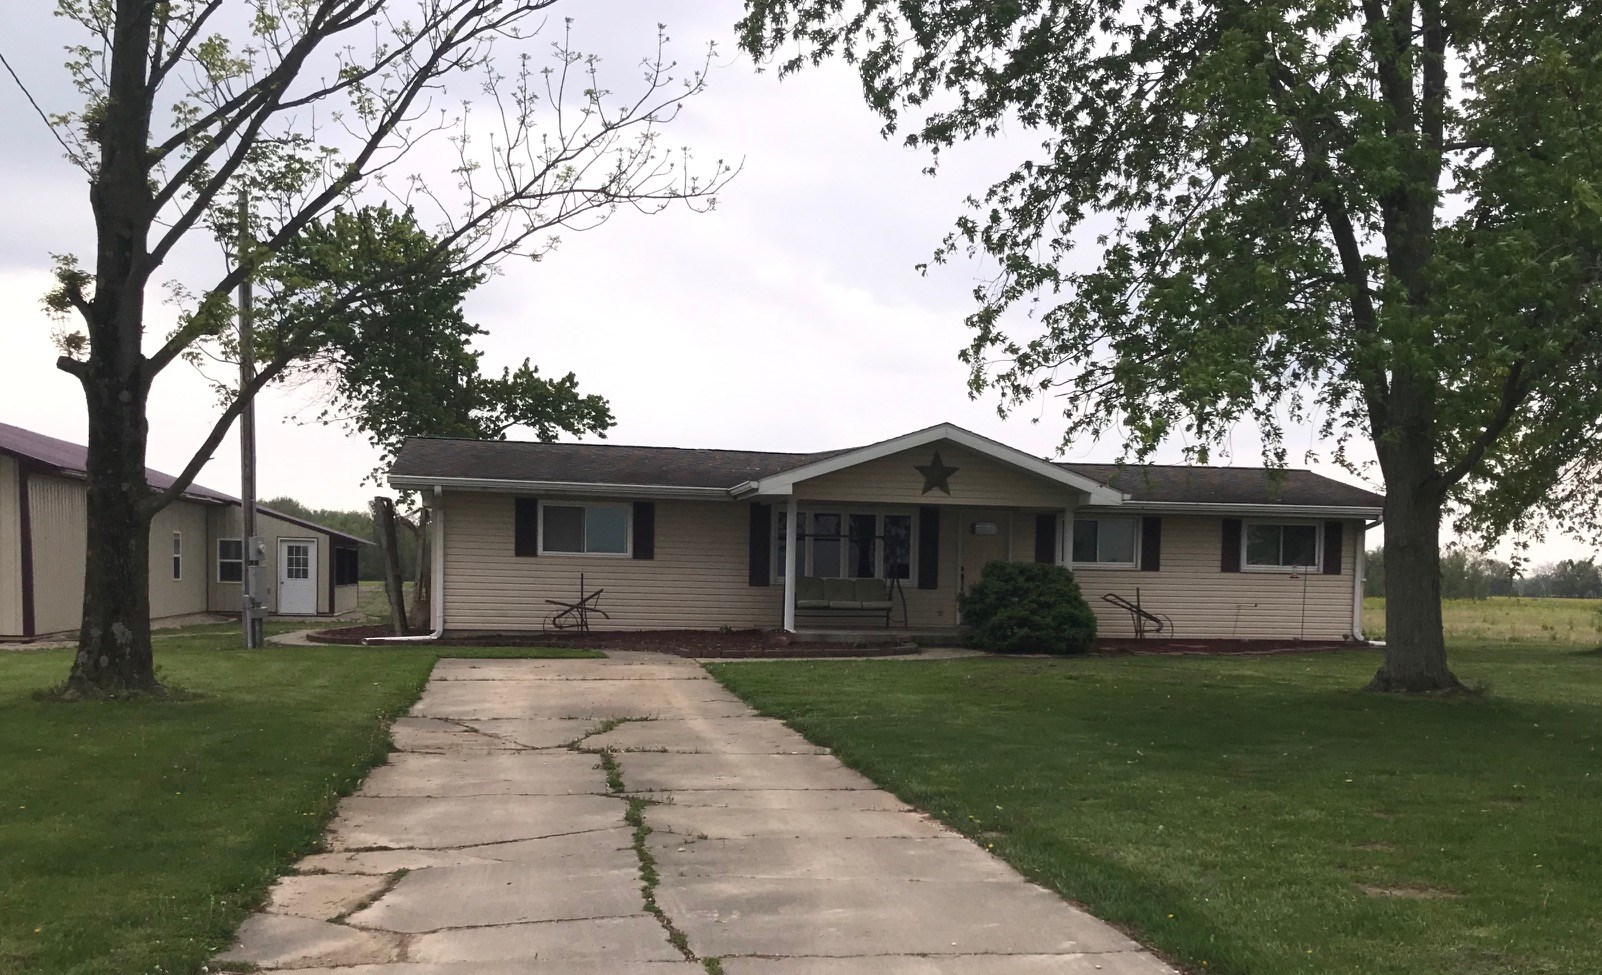 4 Bedroom, 2 Bath Home, Lovely Country Location